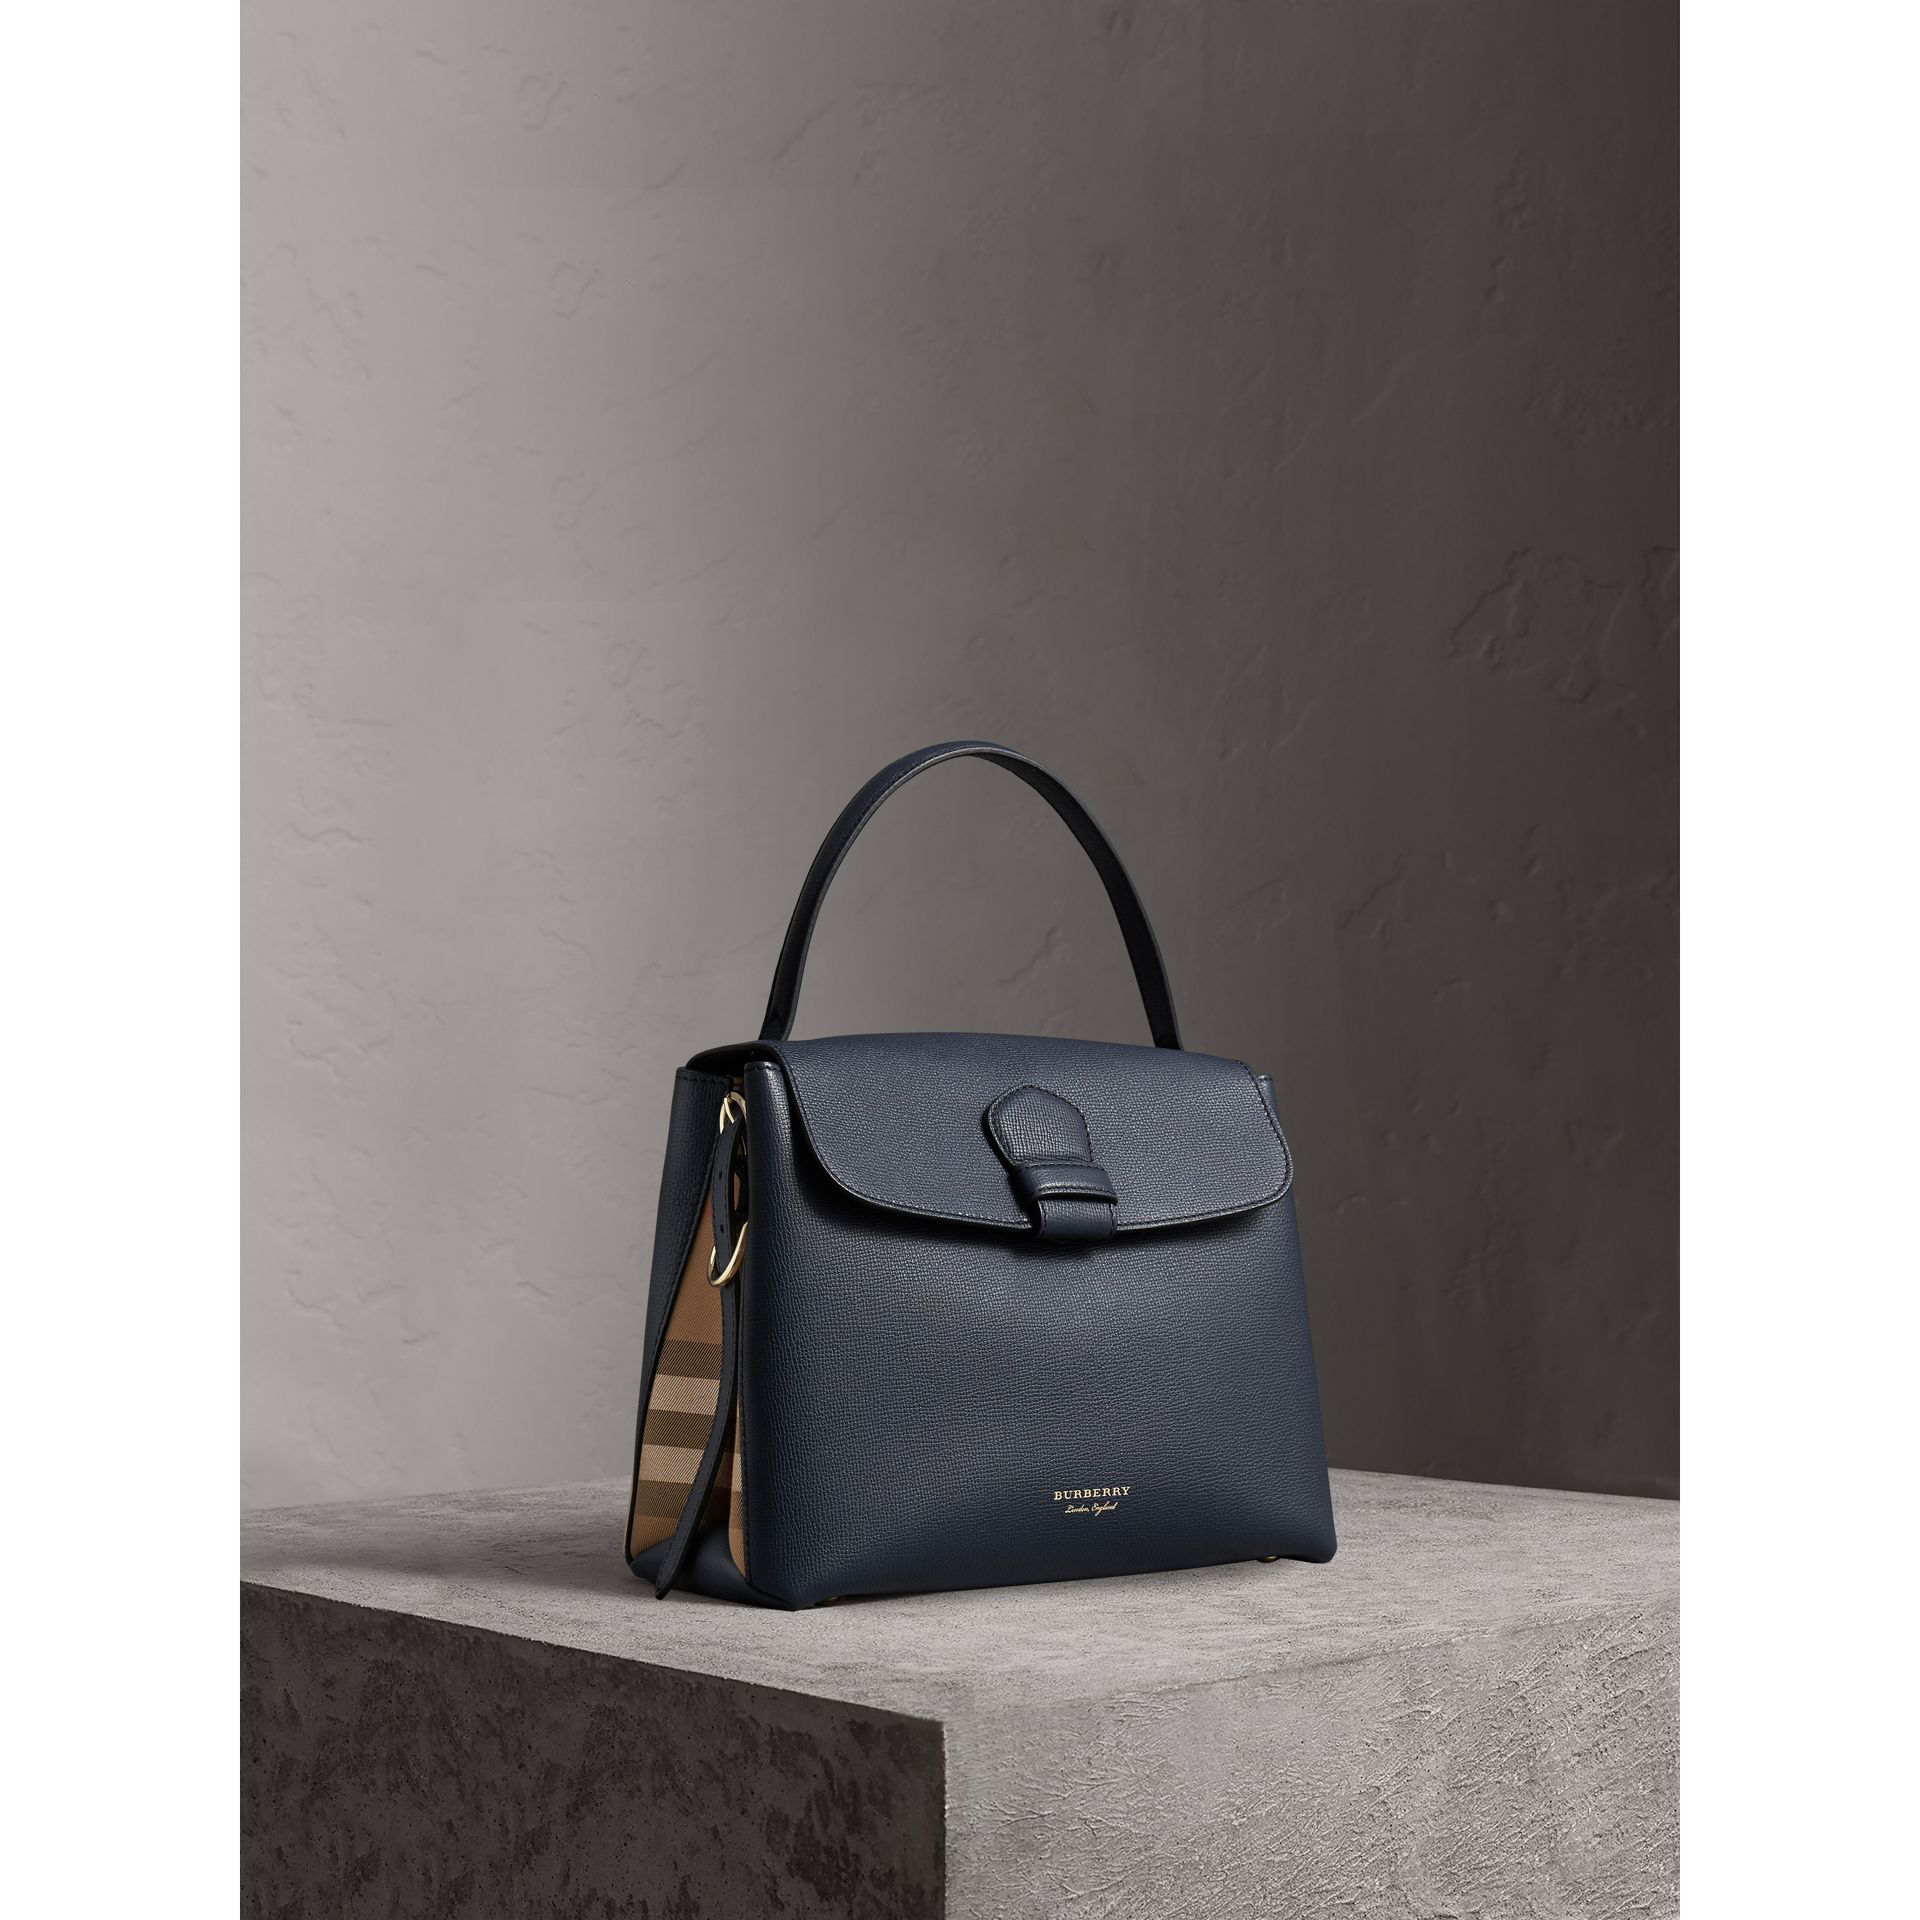 a56003b6ccea Burberry Medium Grainy Leather And House Check Tote Bag In Blue ...